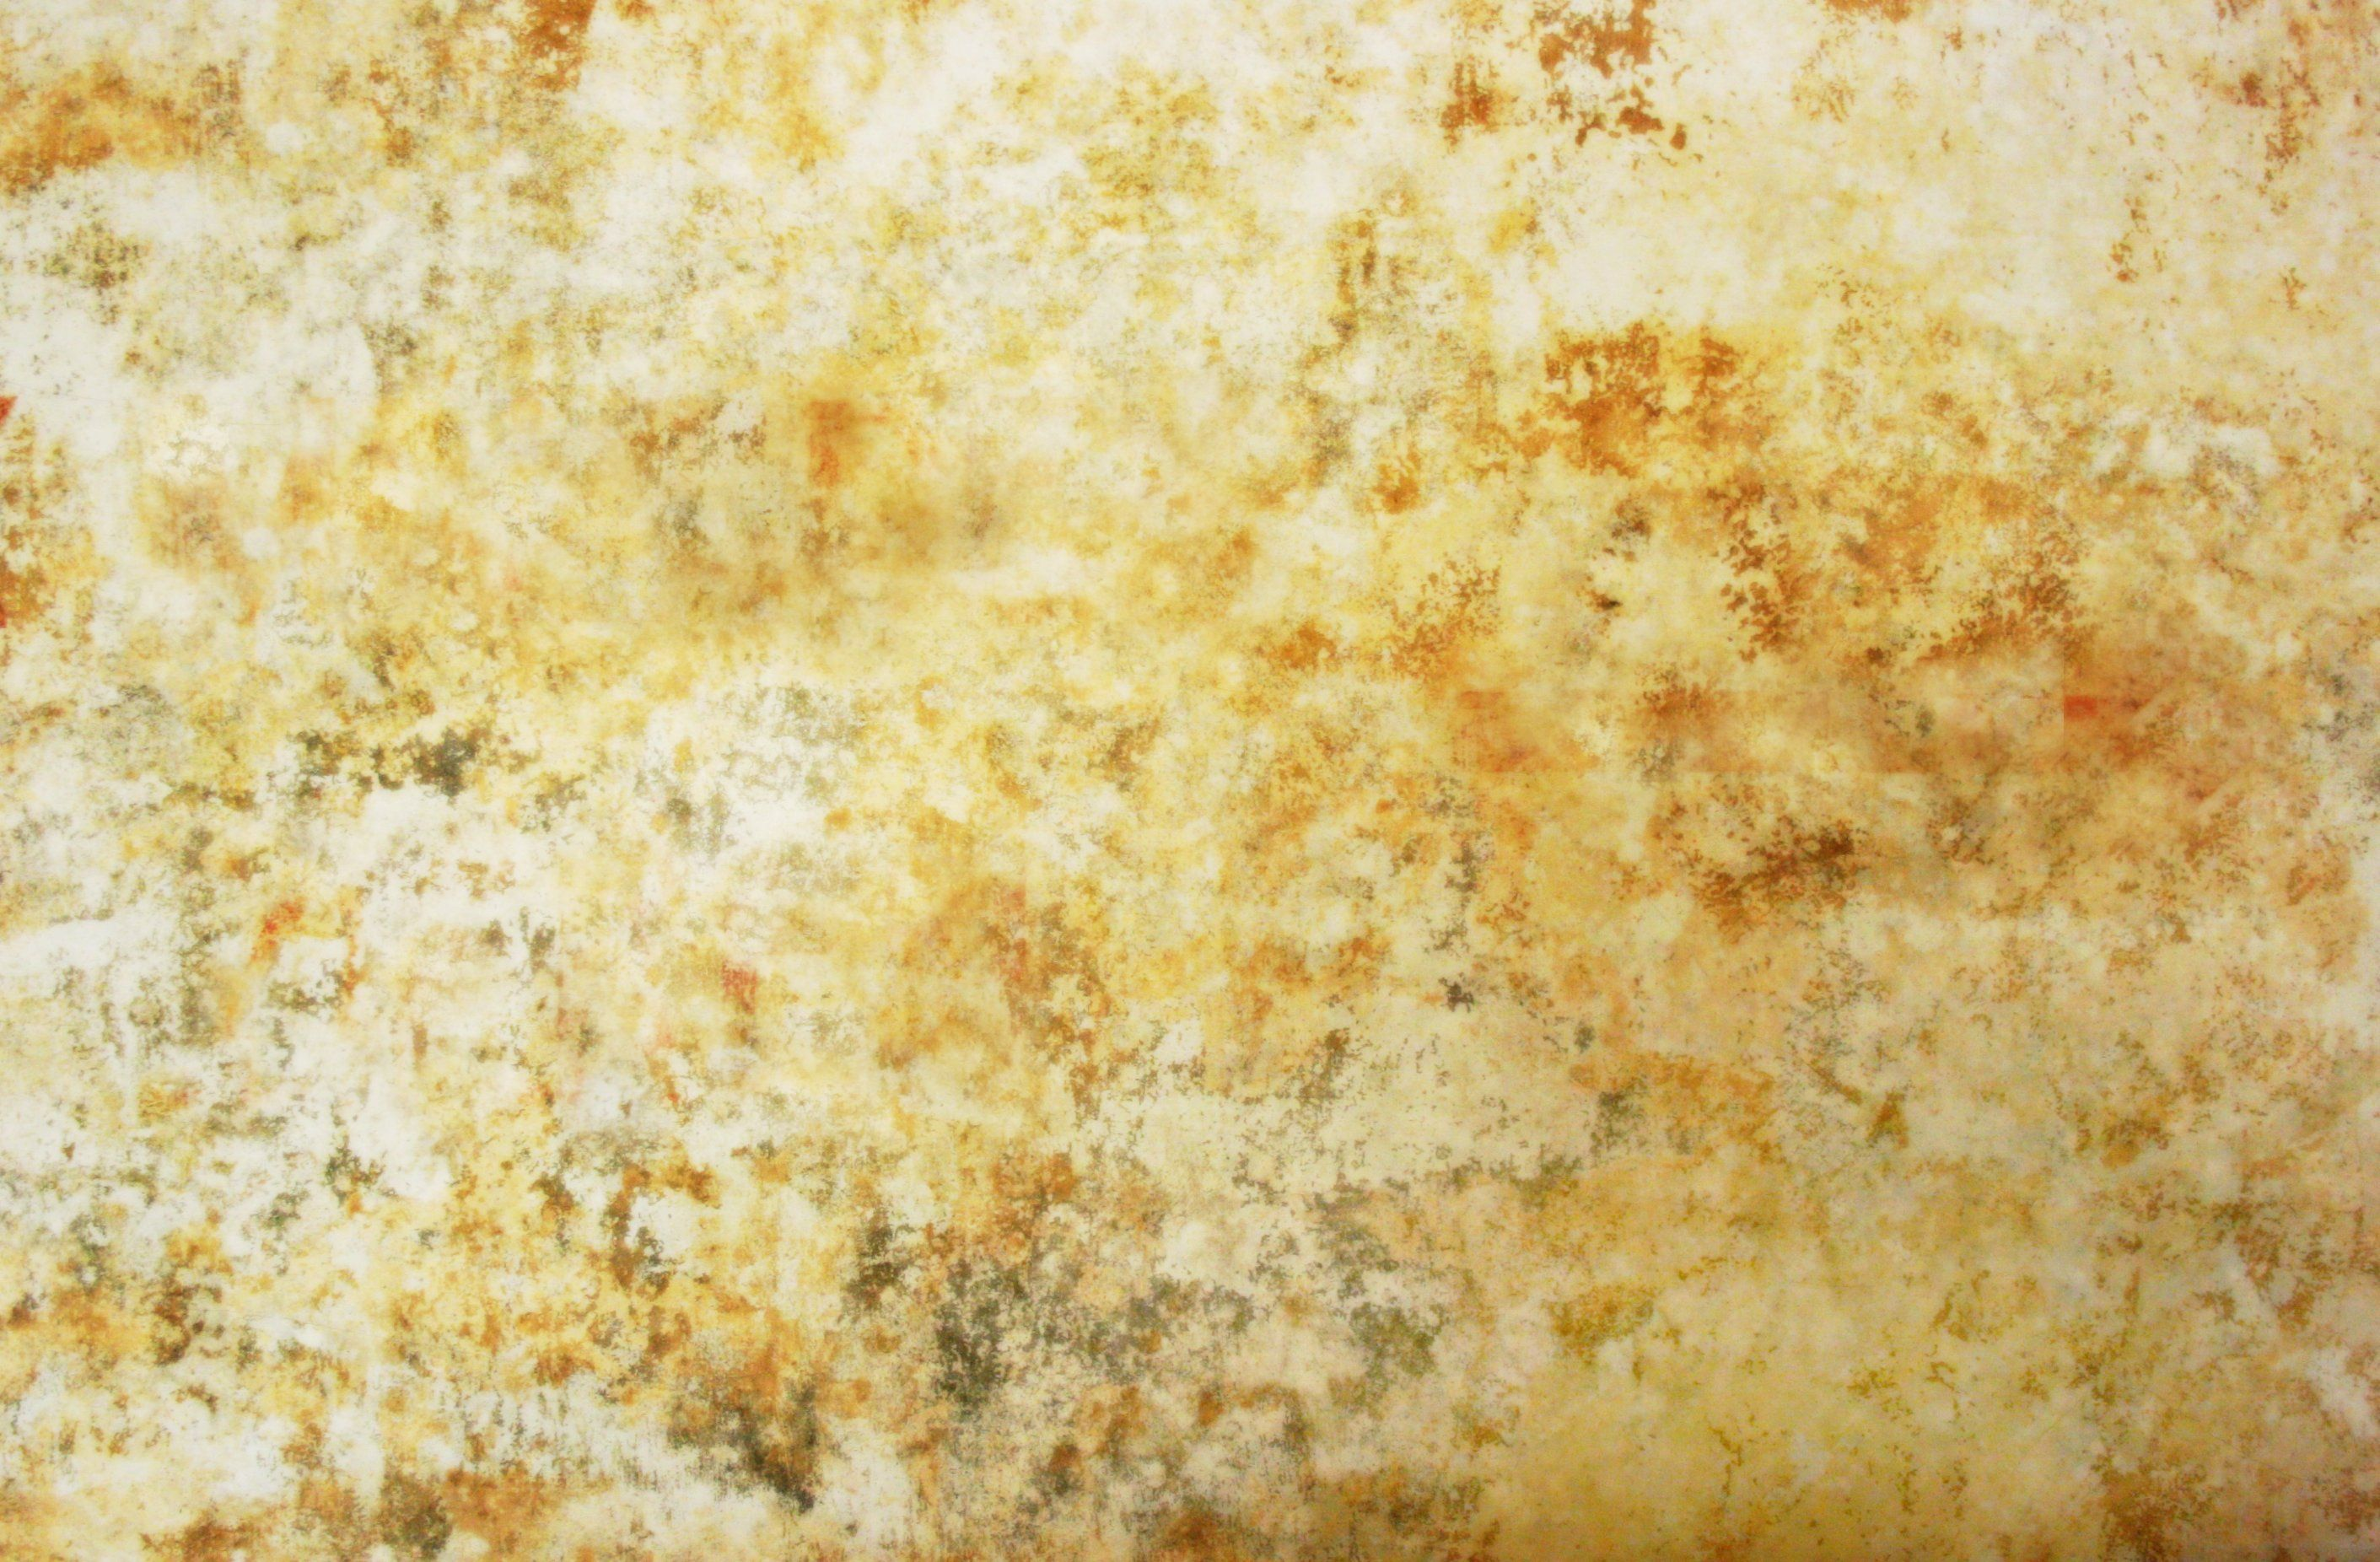 moldy wall texture - Google Search | References | Pinterest | Wall ...